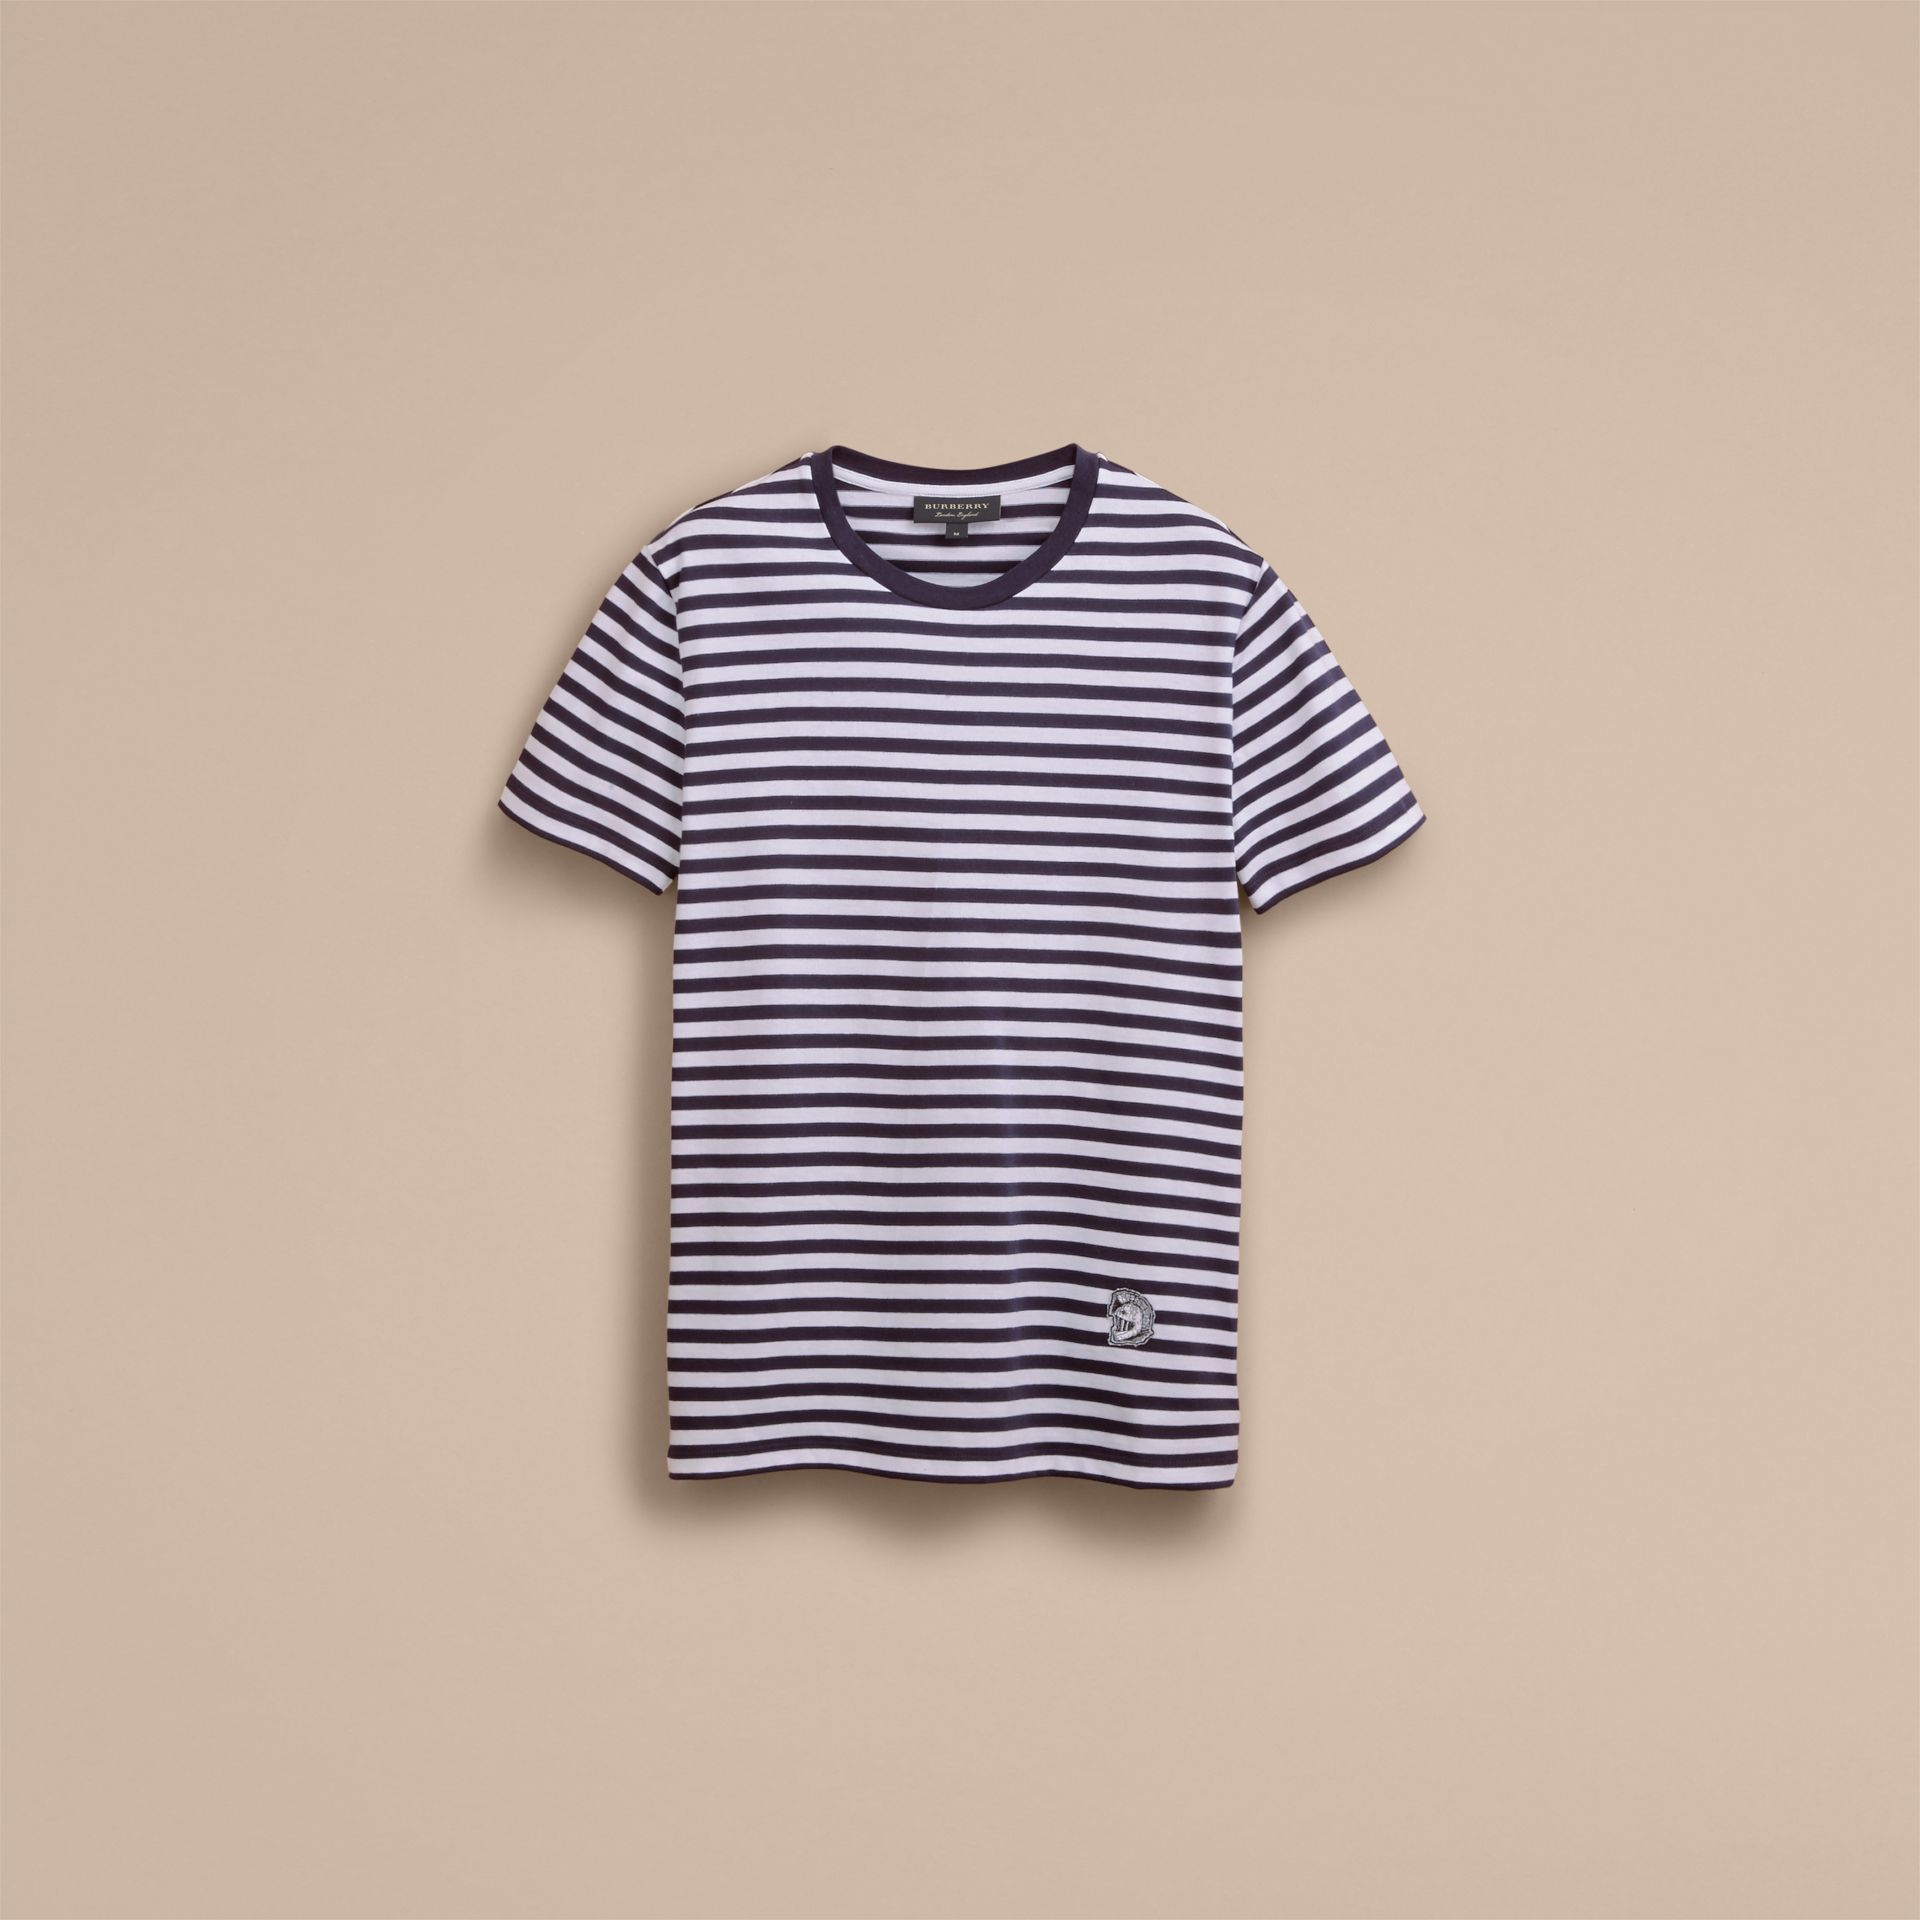 Breton Stripe Cotton T-shirt with Pallas Helmet Motif - Men | Burberry - gallery image 4